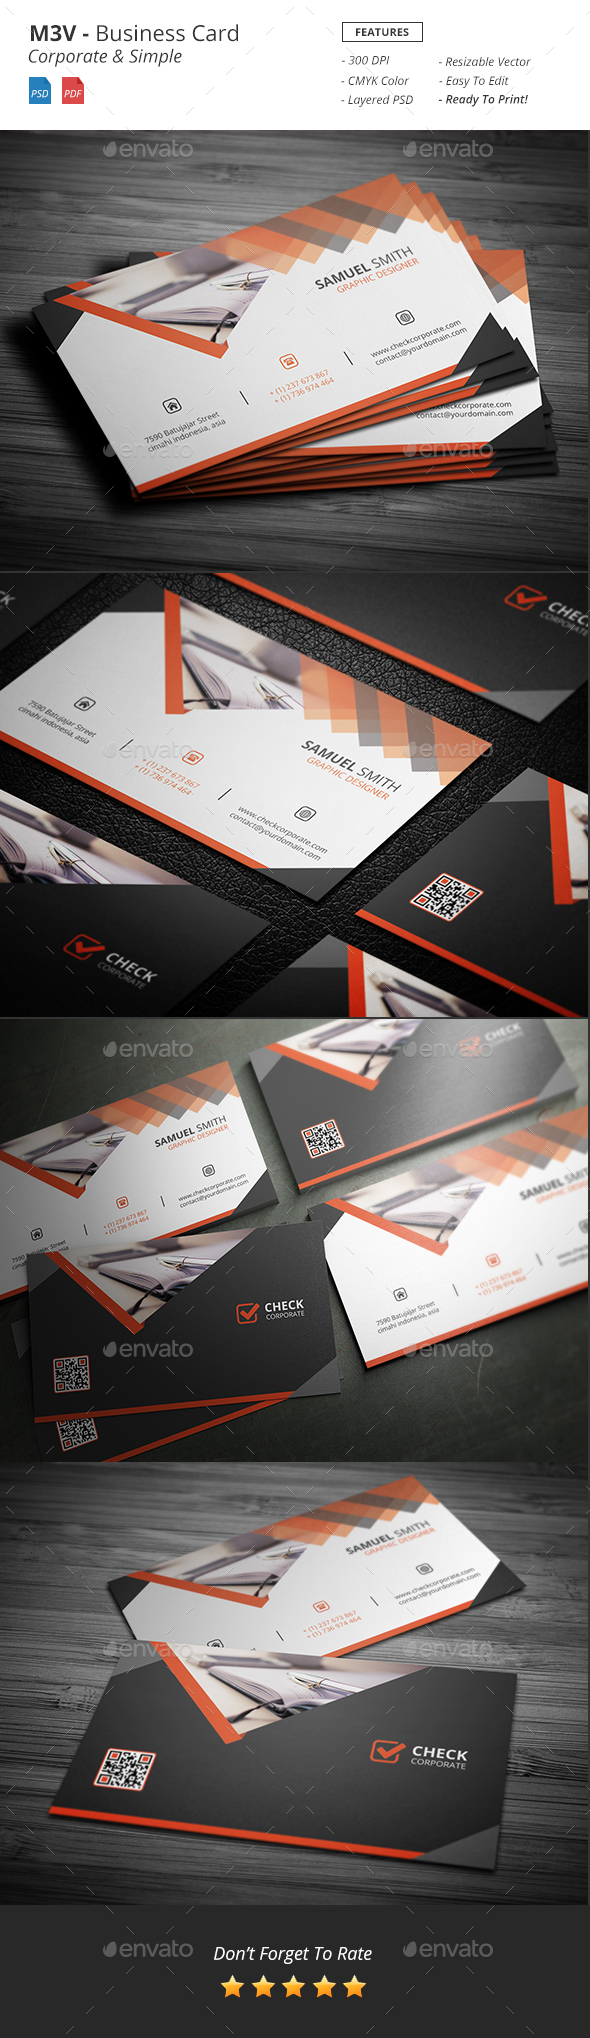 M3V - Business Card - Creative Business Cards